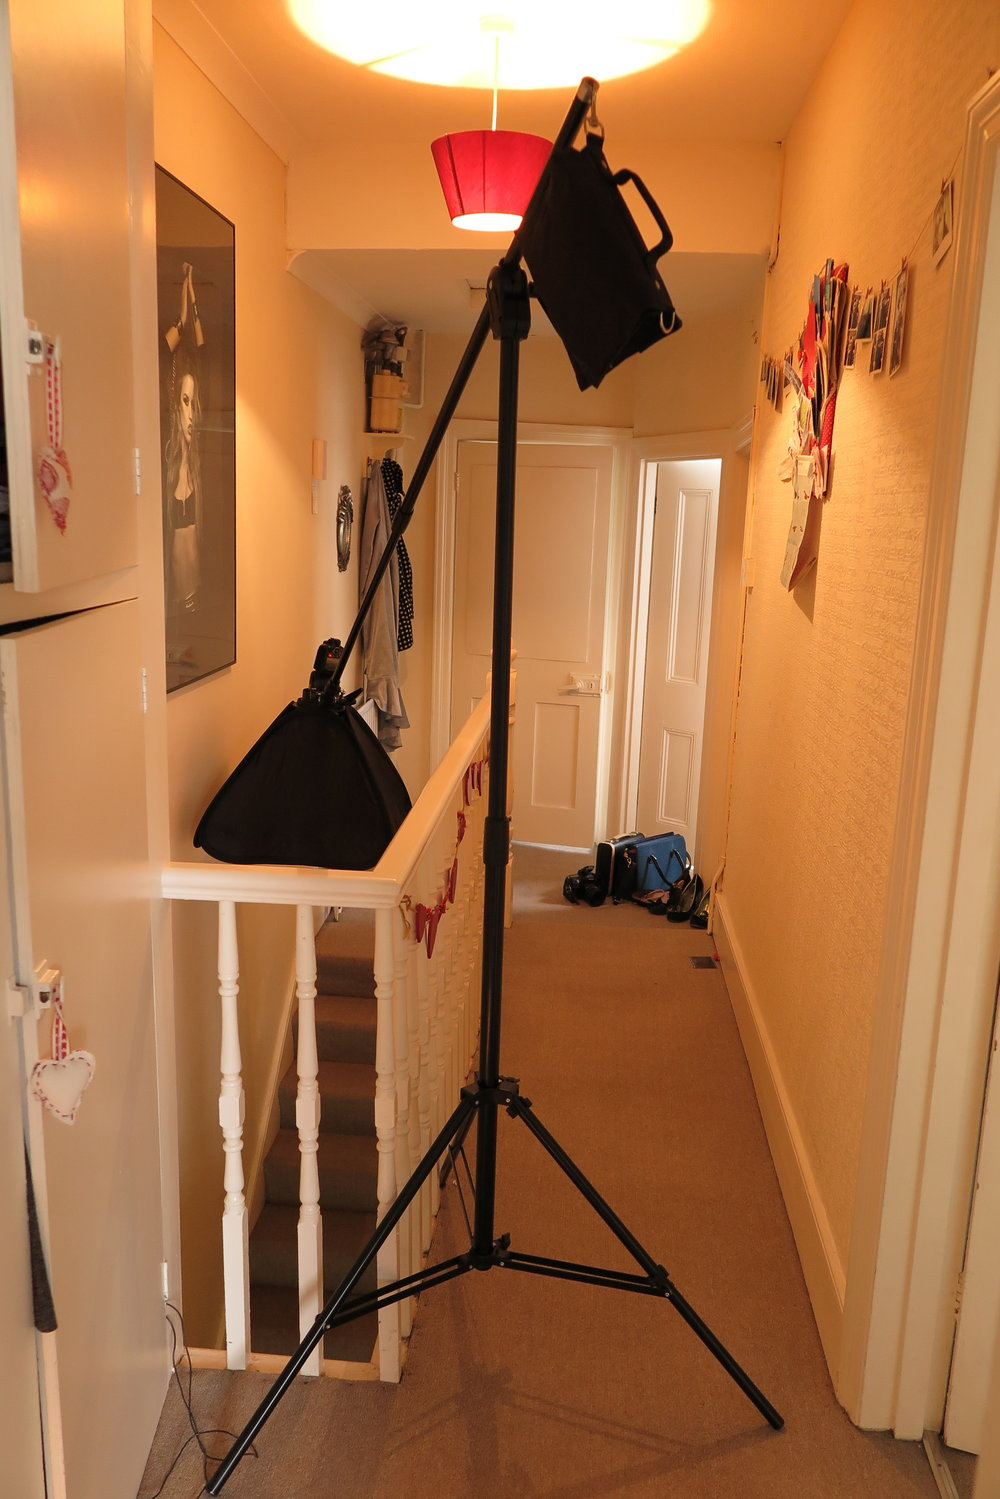 The setup for the shot. Note there is no windows around, all the light is from flash used to mimic window light.